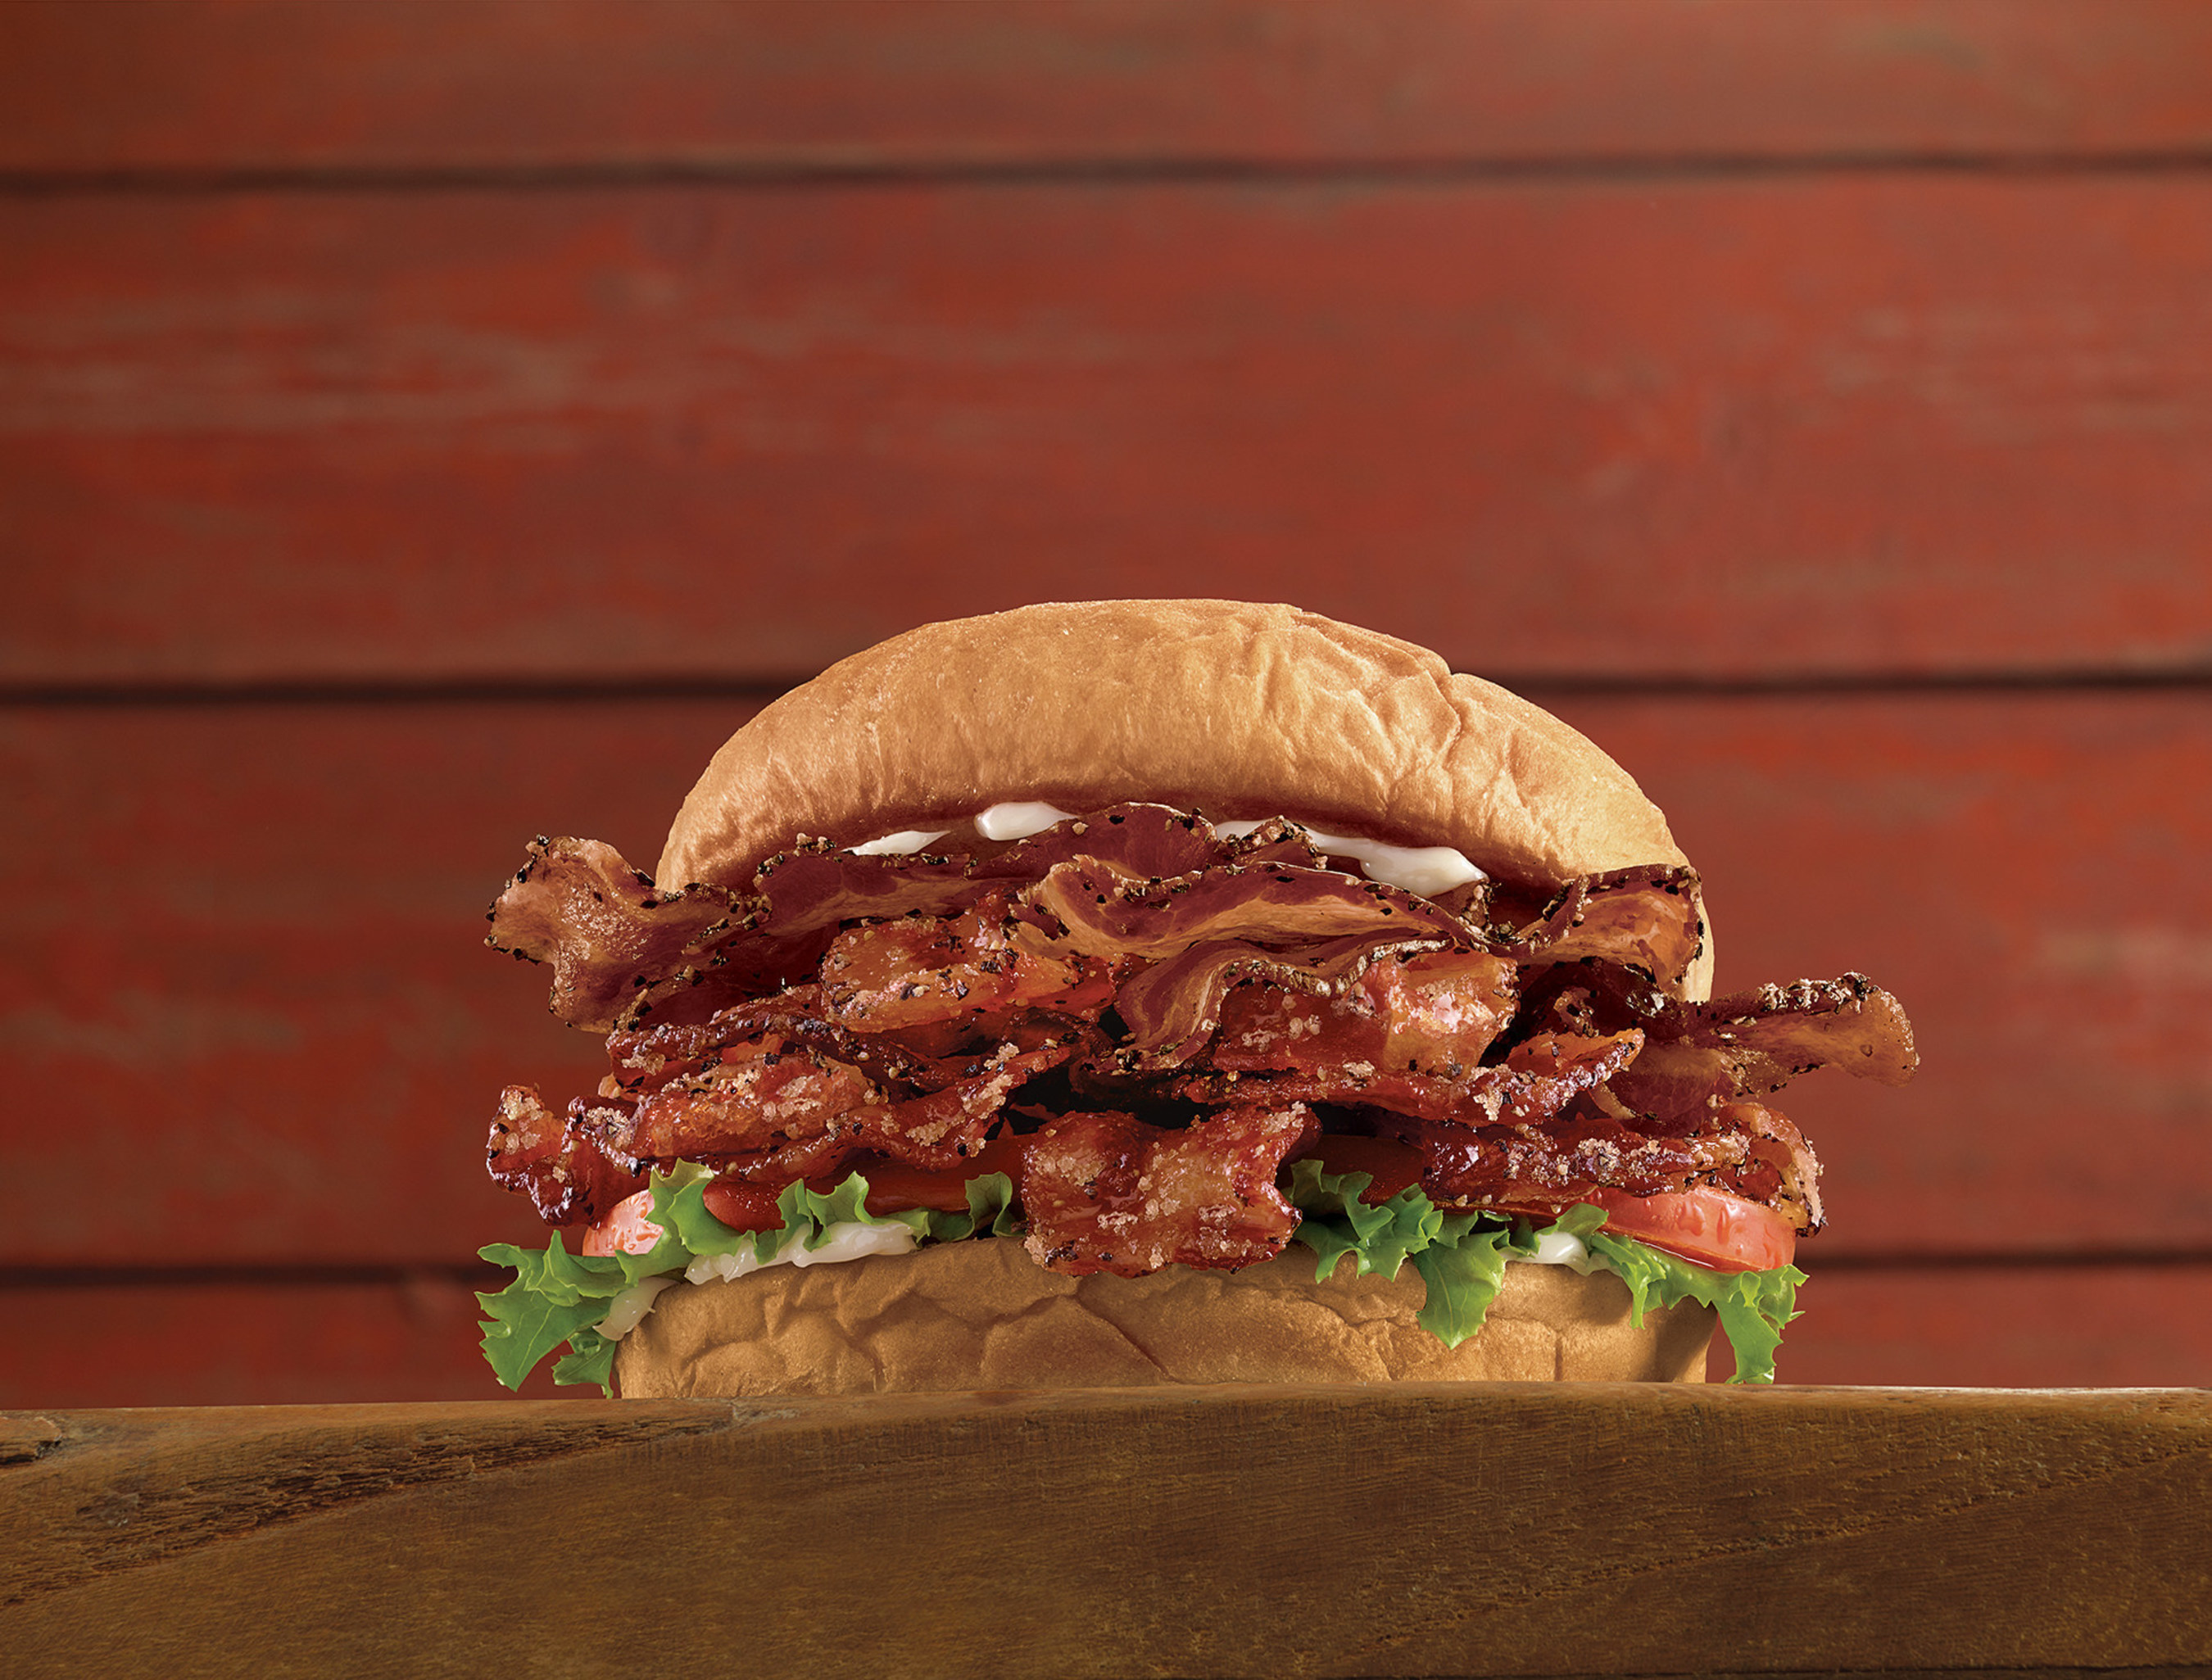 Brown Sugar Bacon BLT: six half strips of brown sugar bacon, six half strips of pepper bacon, lettuce, tomato and mayo on a sweet, fluffy King's Hawaiian bun.